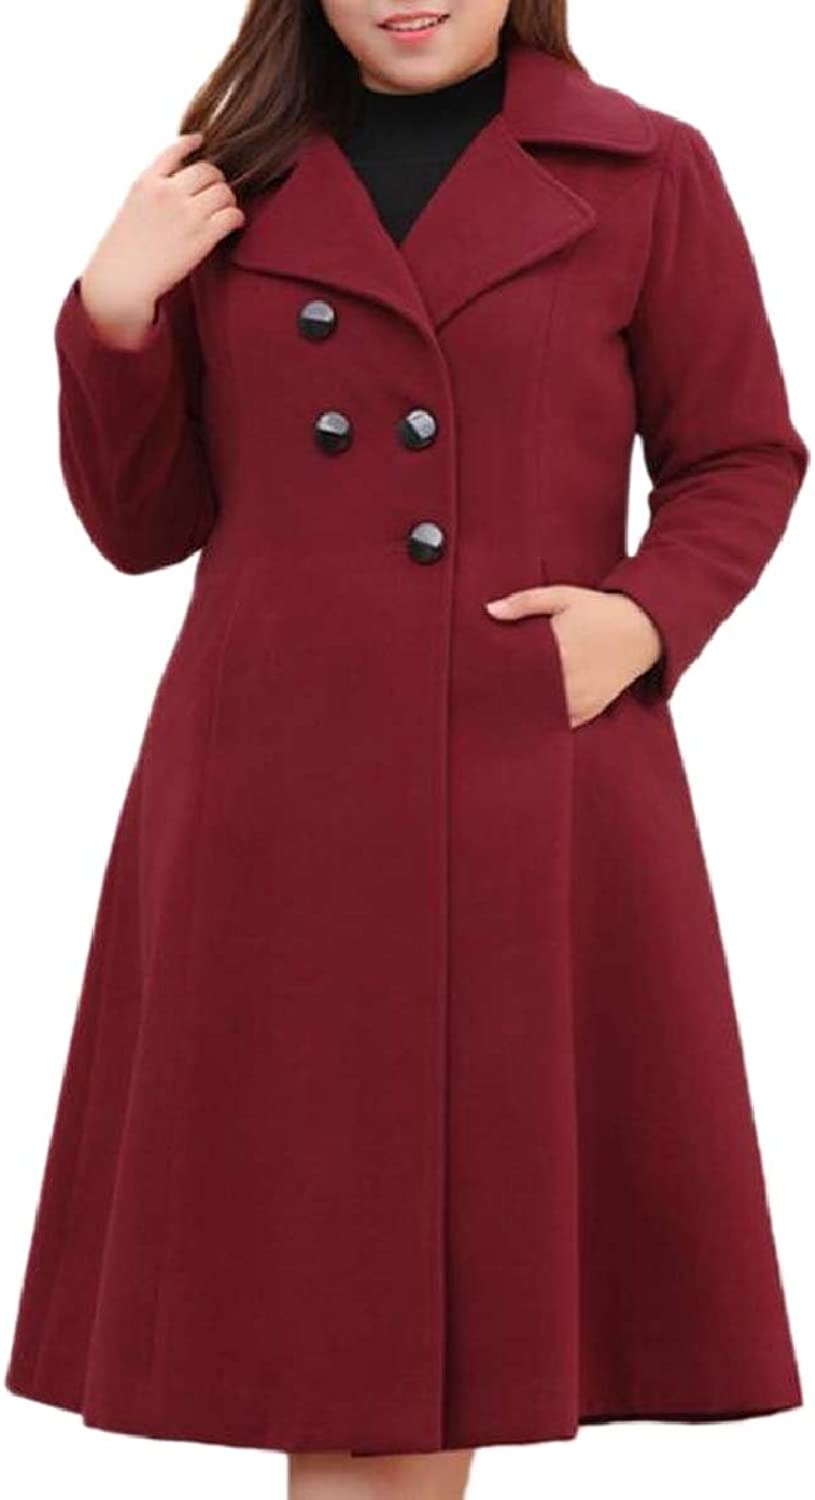 ZXFHZSCA Womens Winter Plus Size Double Breasted Overcoat Wool Blended Pea Coat